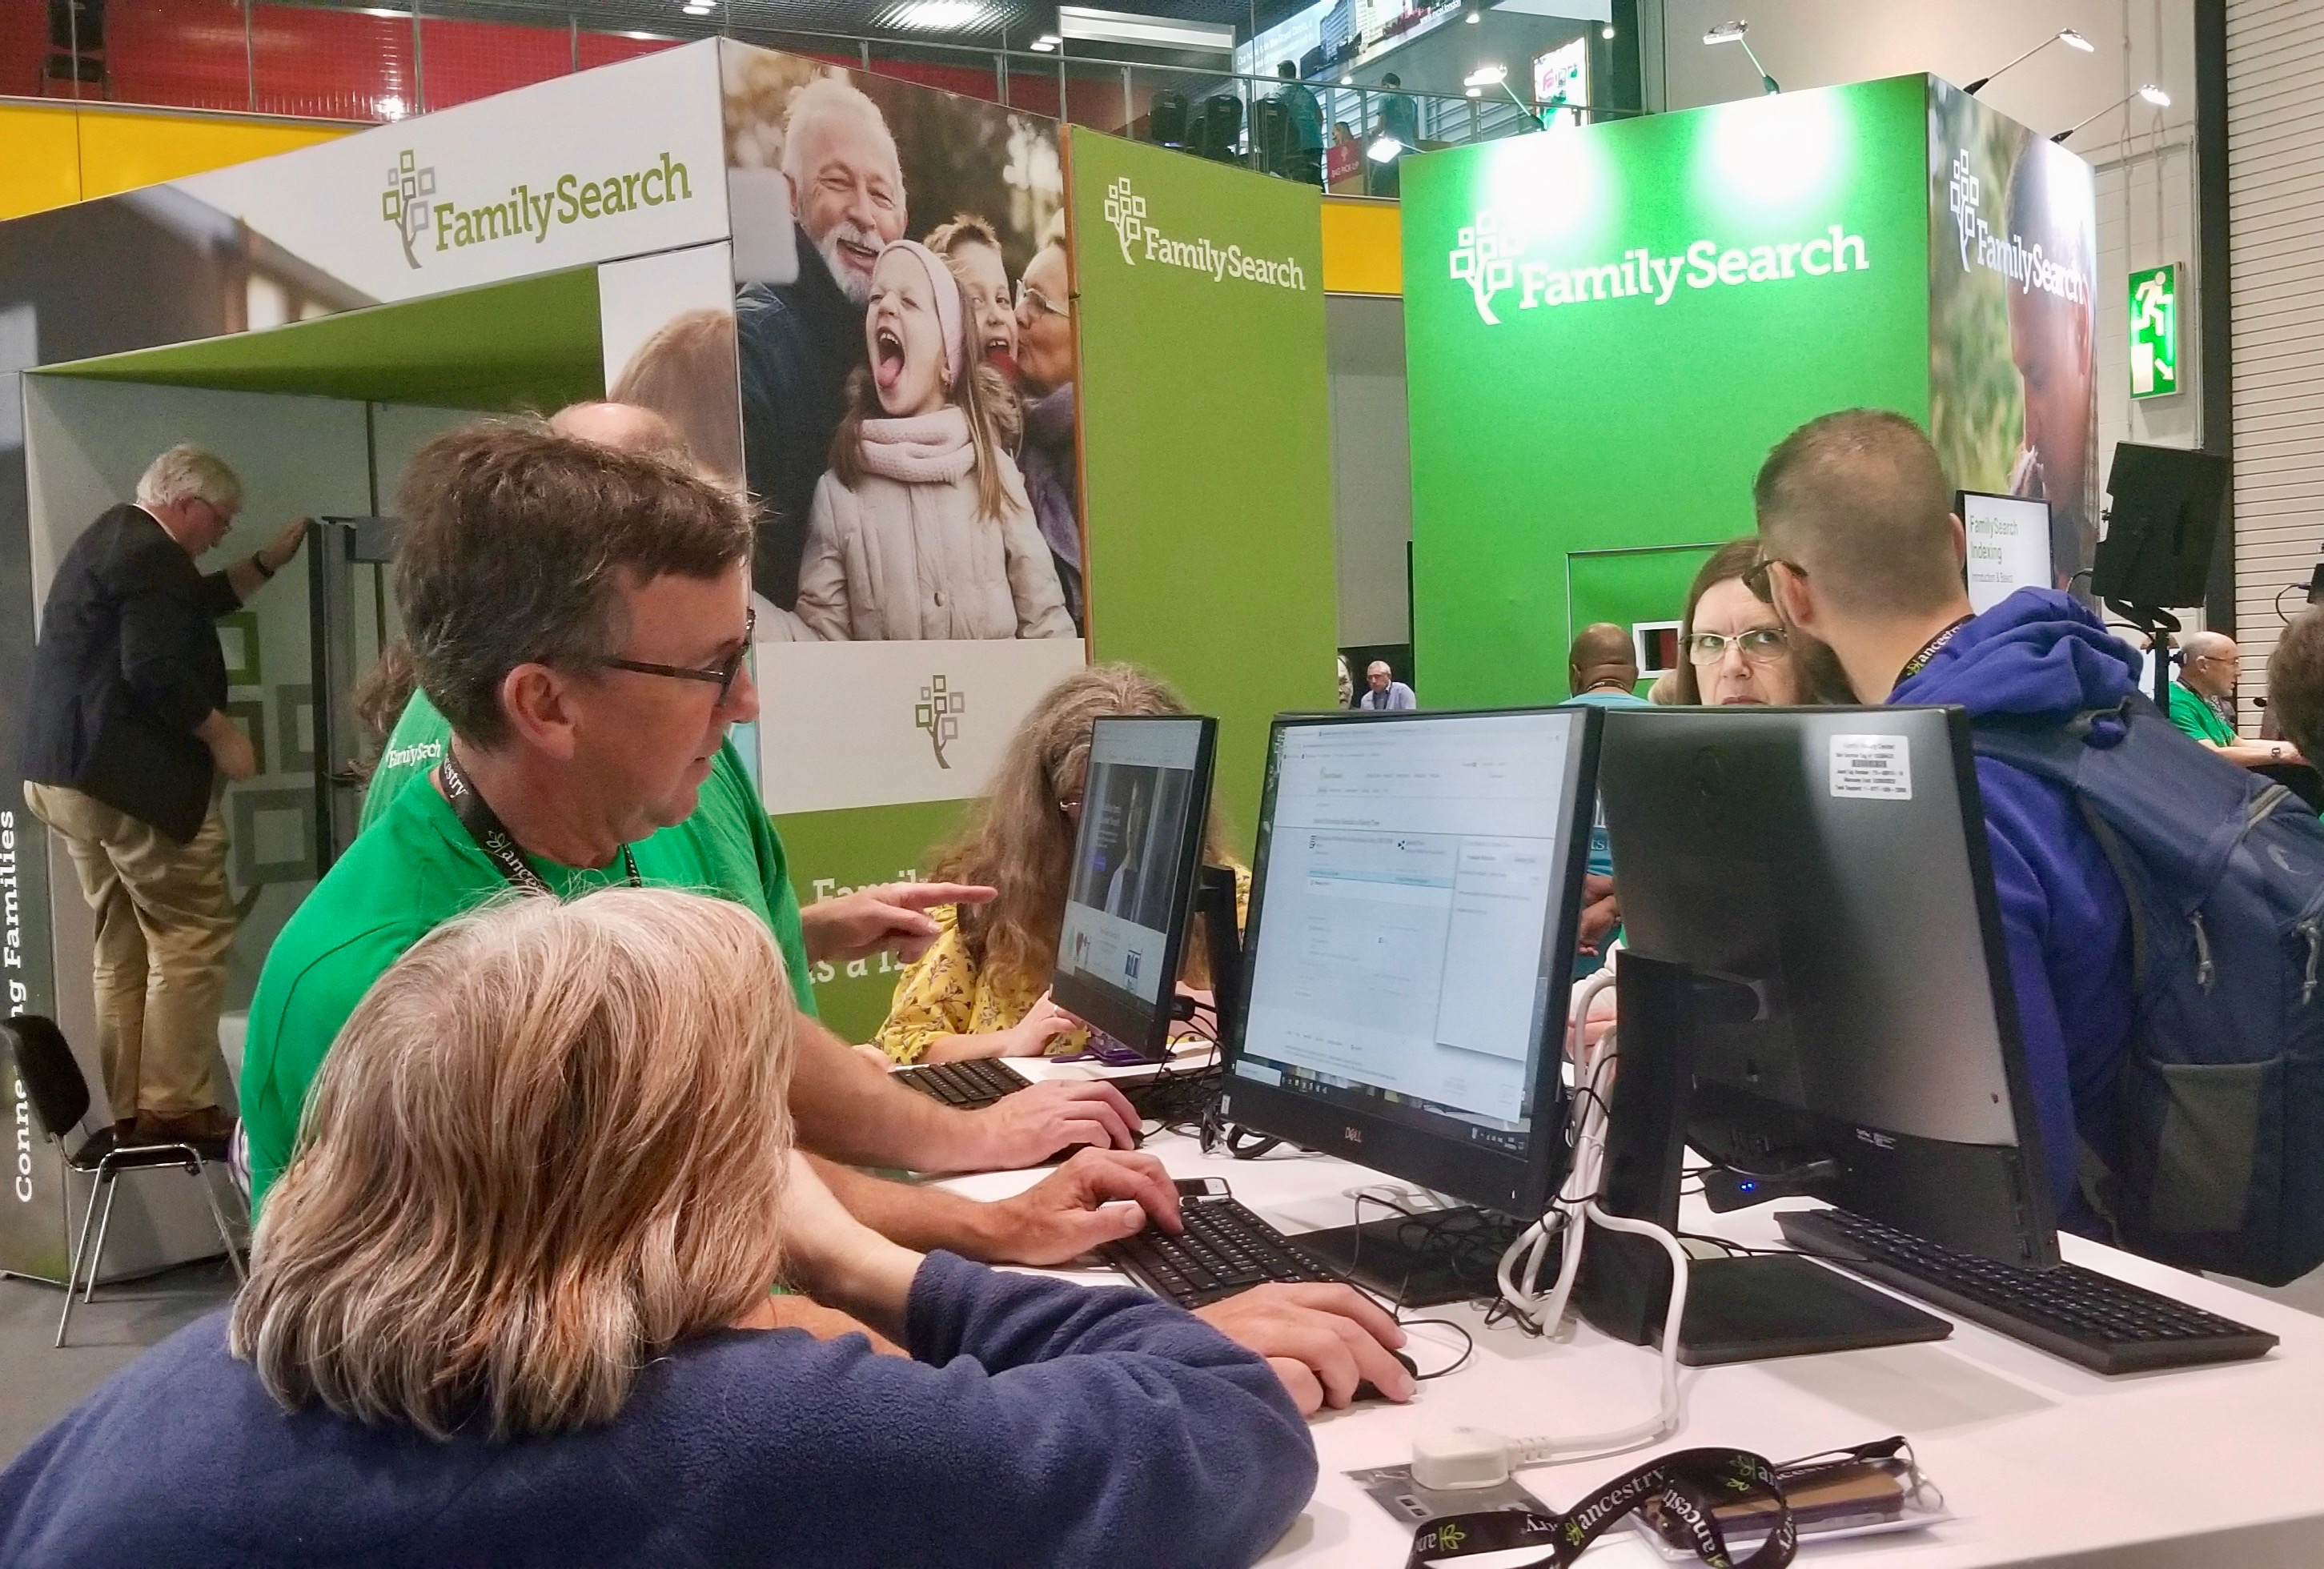 Attendees confer with staff at the FamilySearch booth in the RootsTech London exhibition area at London ExCel convention center on Thursday, Oct. 24, 2019.